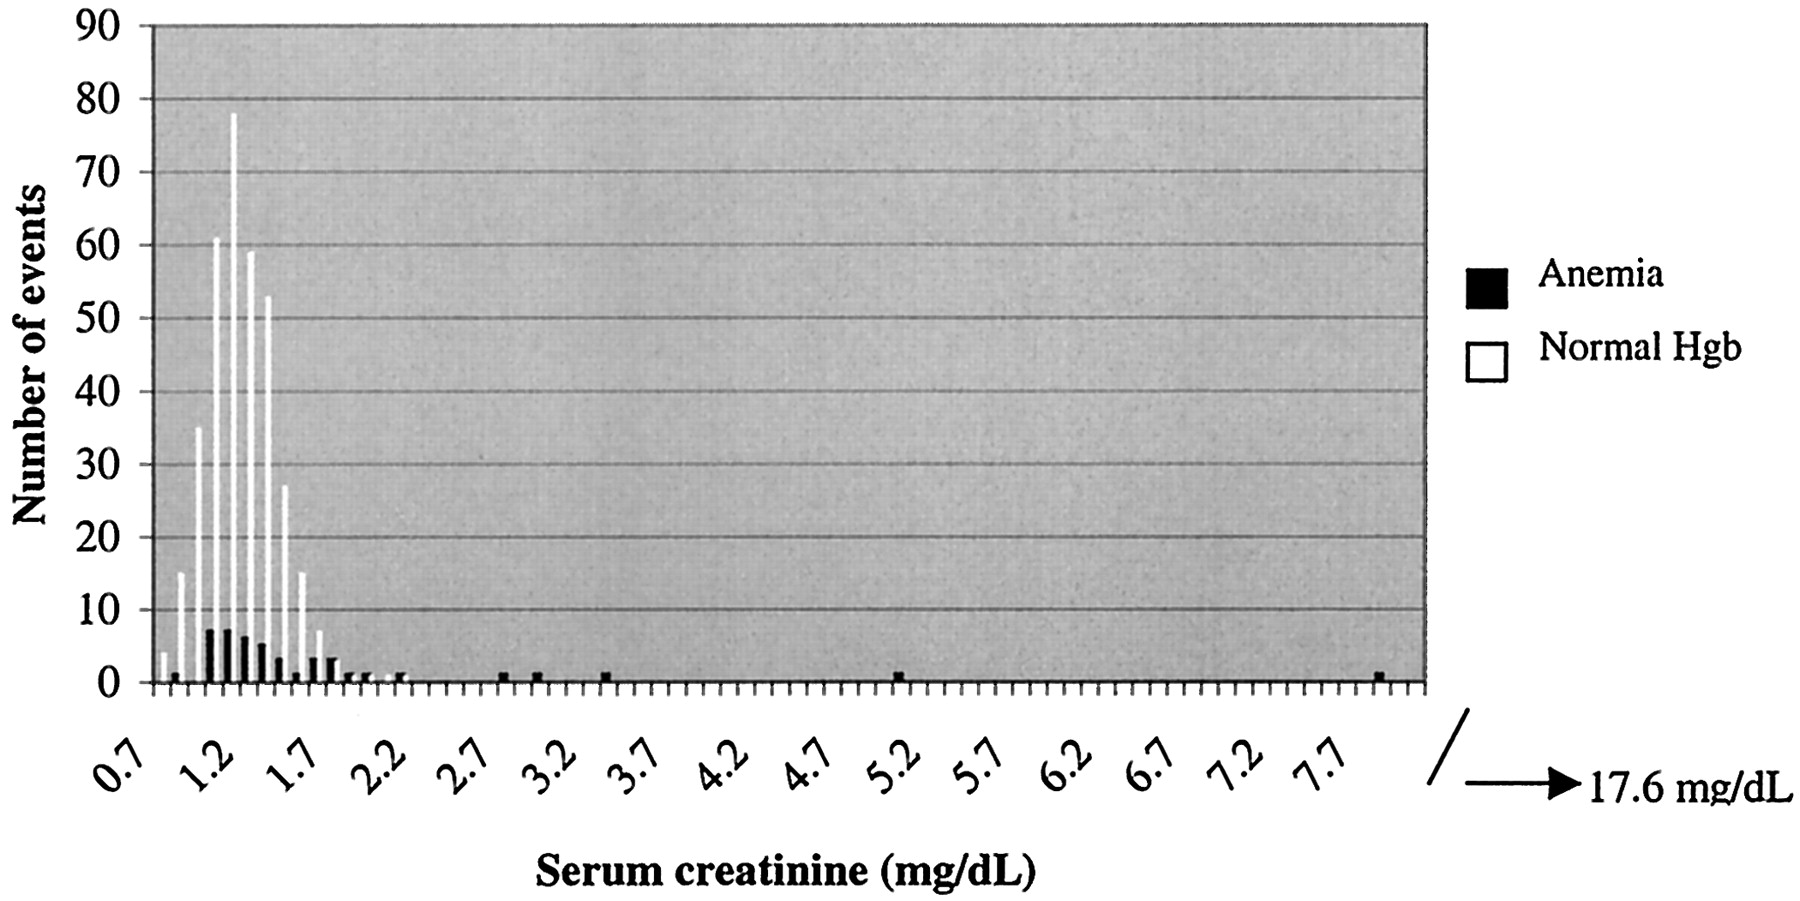 Association of High Serum Creatinine and Anemia Increases